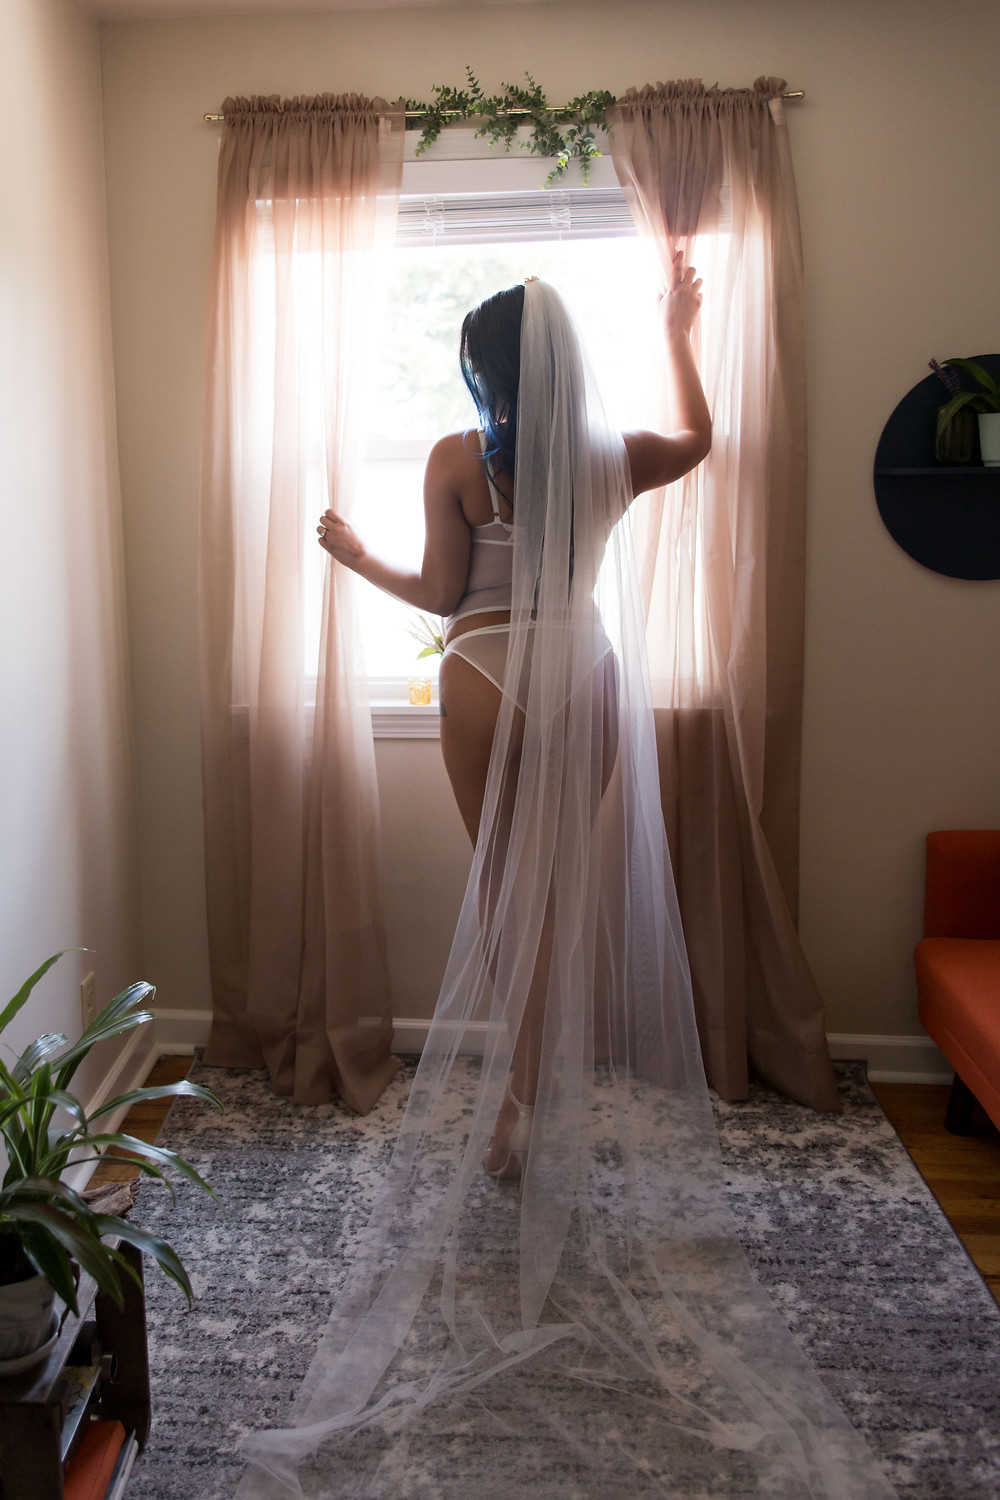 client closet bridal veil available for Buffalo NY boudoir photo studio